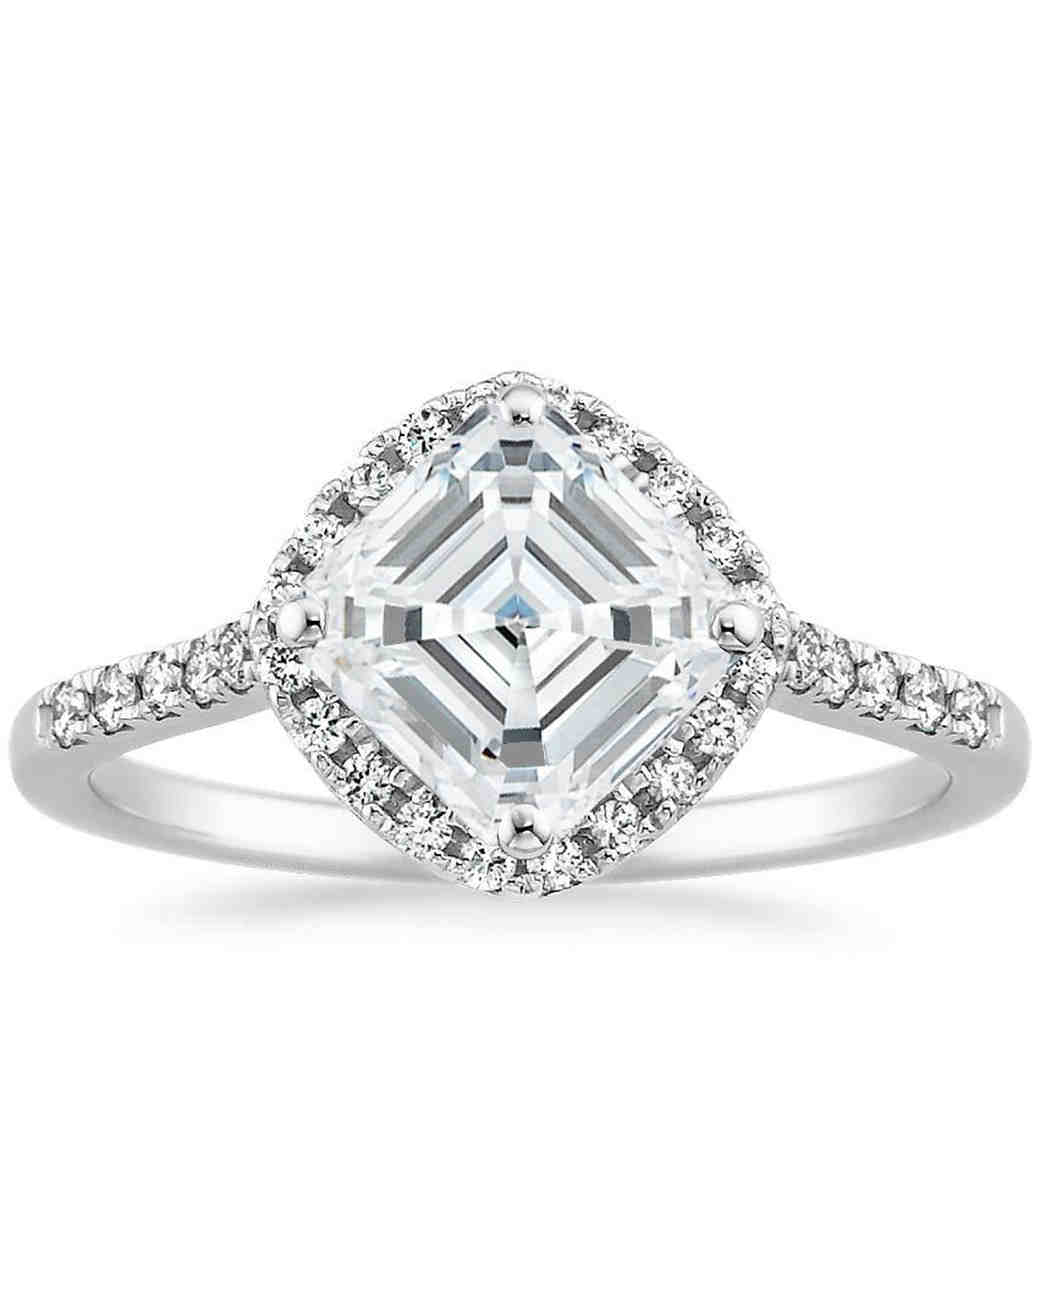 Brilliant Earth Asscher-Cut 18K White Gold Cometa Diamond Engagement Ring